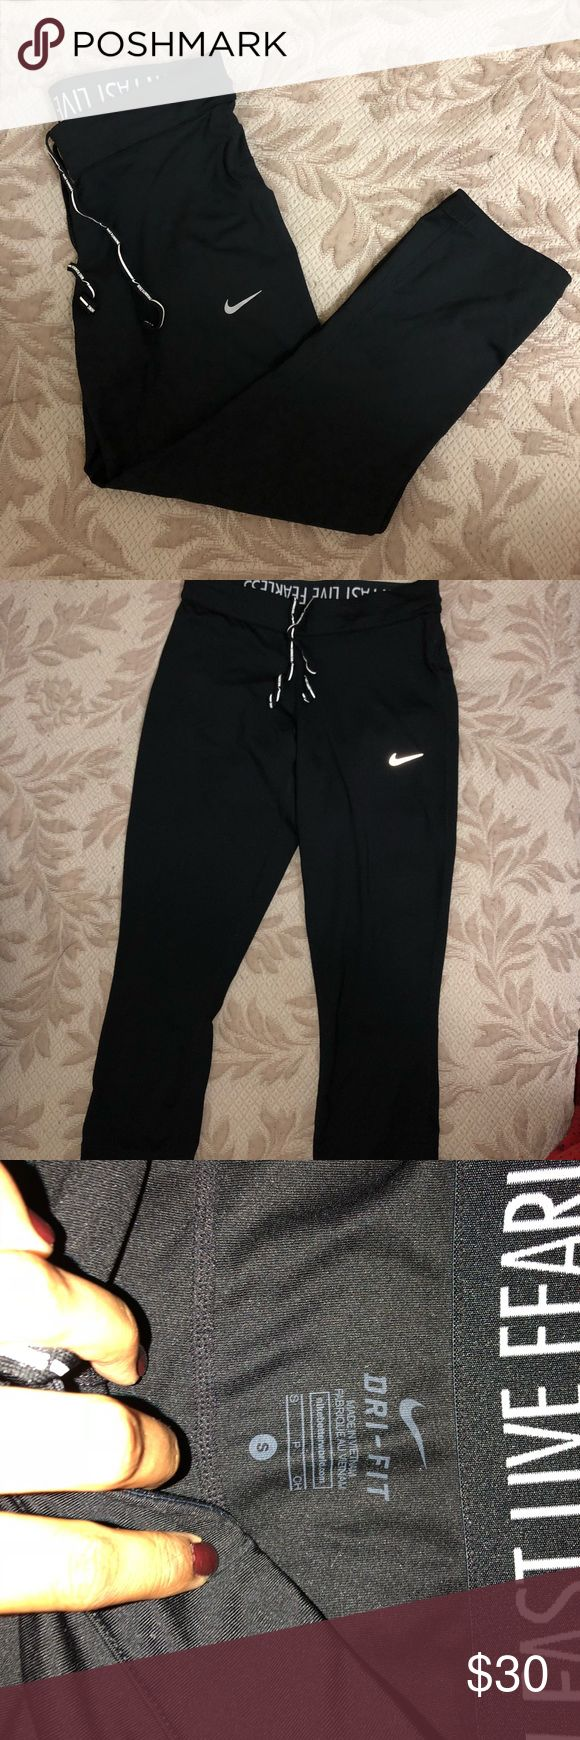 Nike running tights Women's Nike Dry-Fit relay crop running tights in size small. Only wormed once so in perfect conditions Nike Pants Track Pants & Joggers